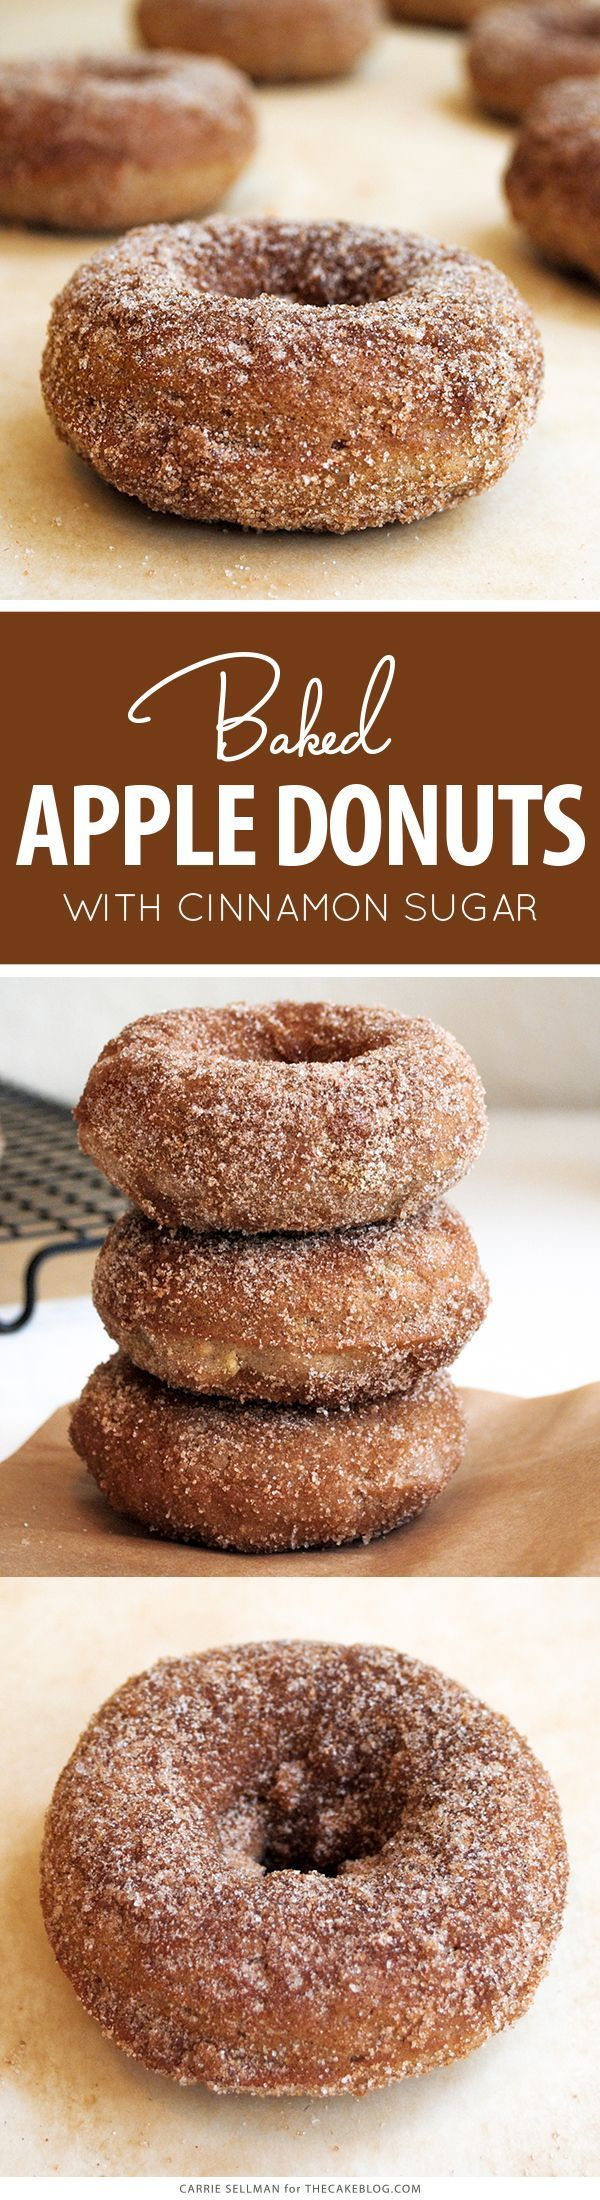 Baked Apple Donut Recipe | TheCakeBlog.com #DesertsFoodRecipes